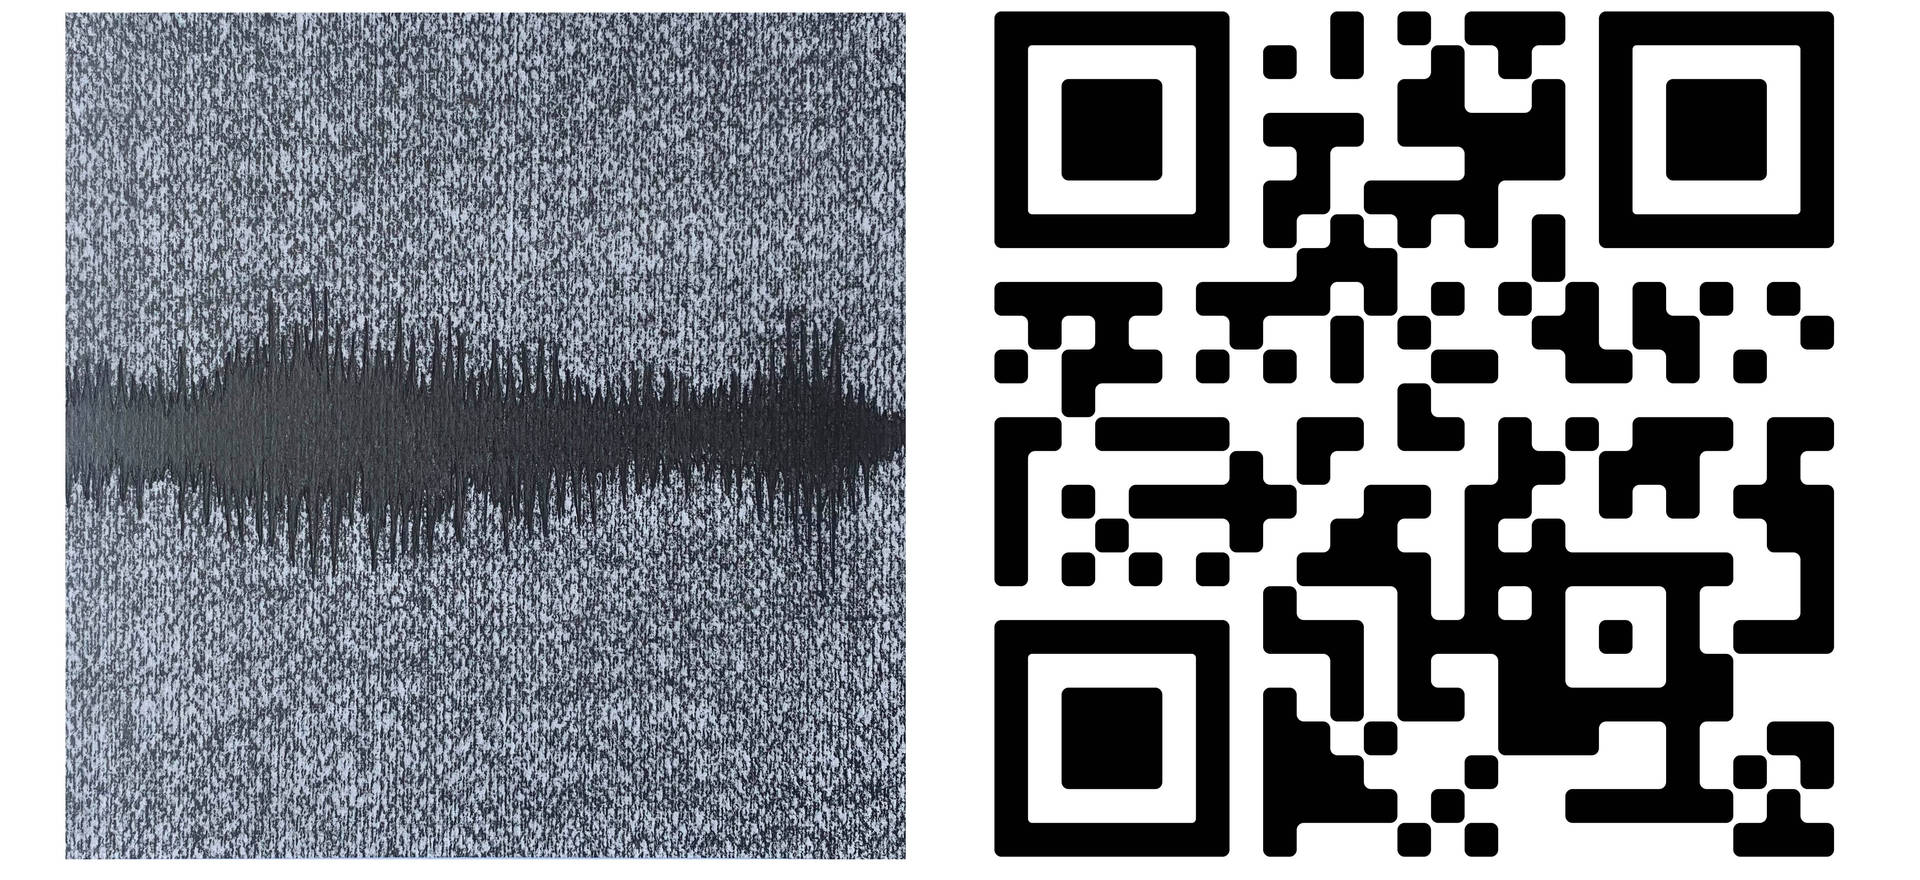 Spectography (temporal envelope) 2021. (detail) Relief. 7.87 x7.87 inches each 20 x 20 cm. each Graphite drawing of a spectrograph and QR of the sound of a whale.